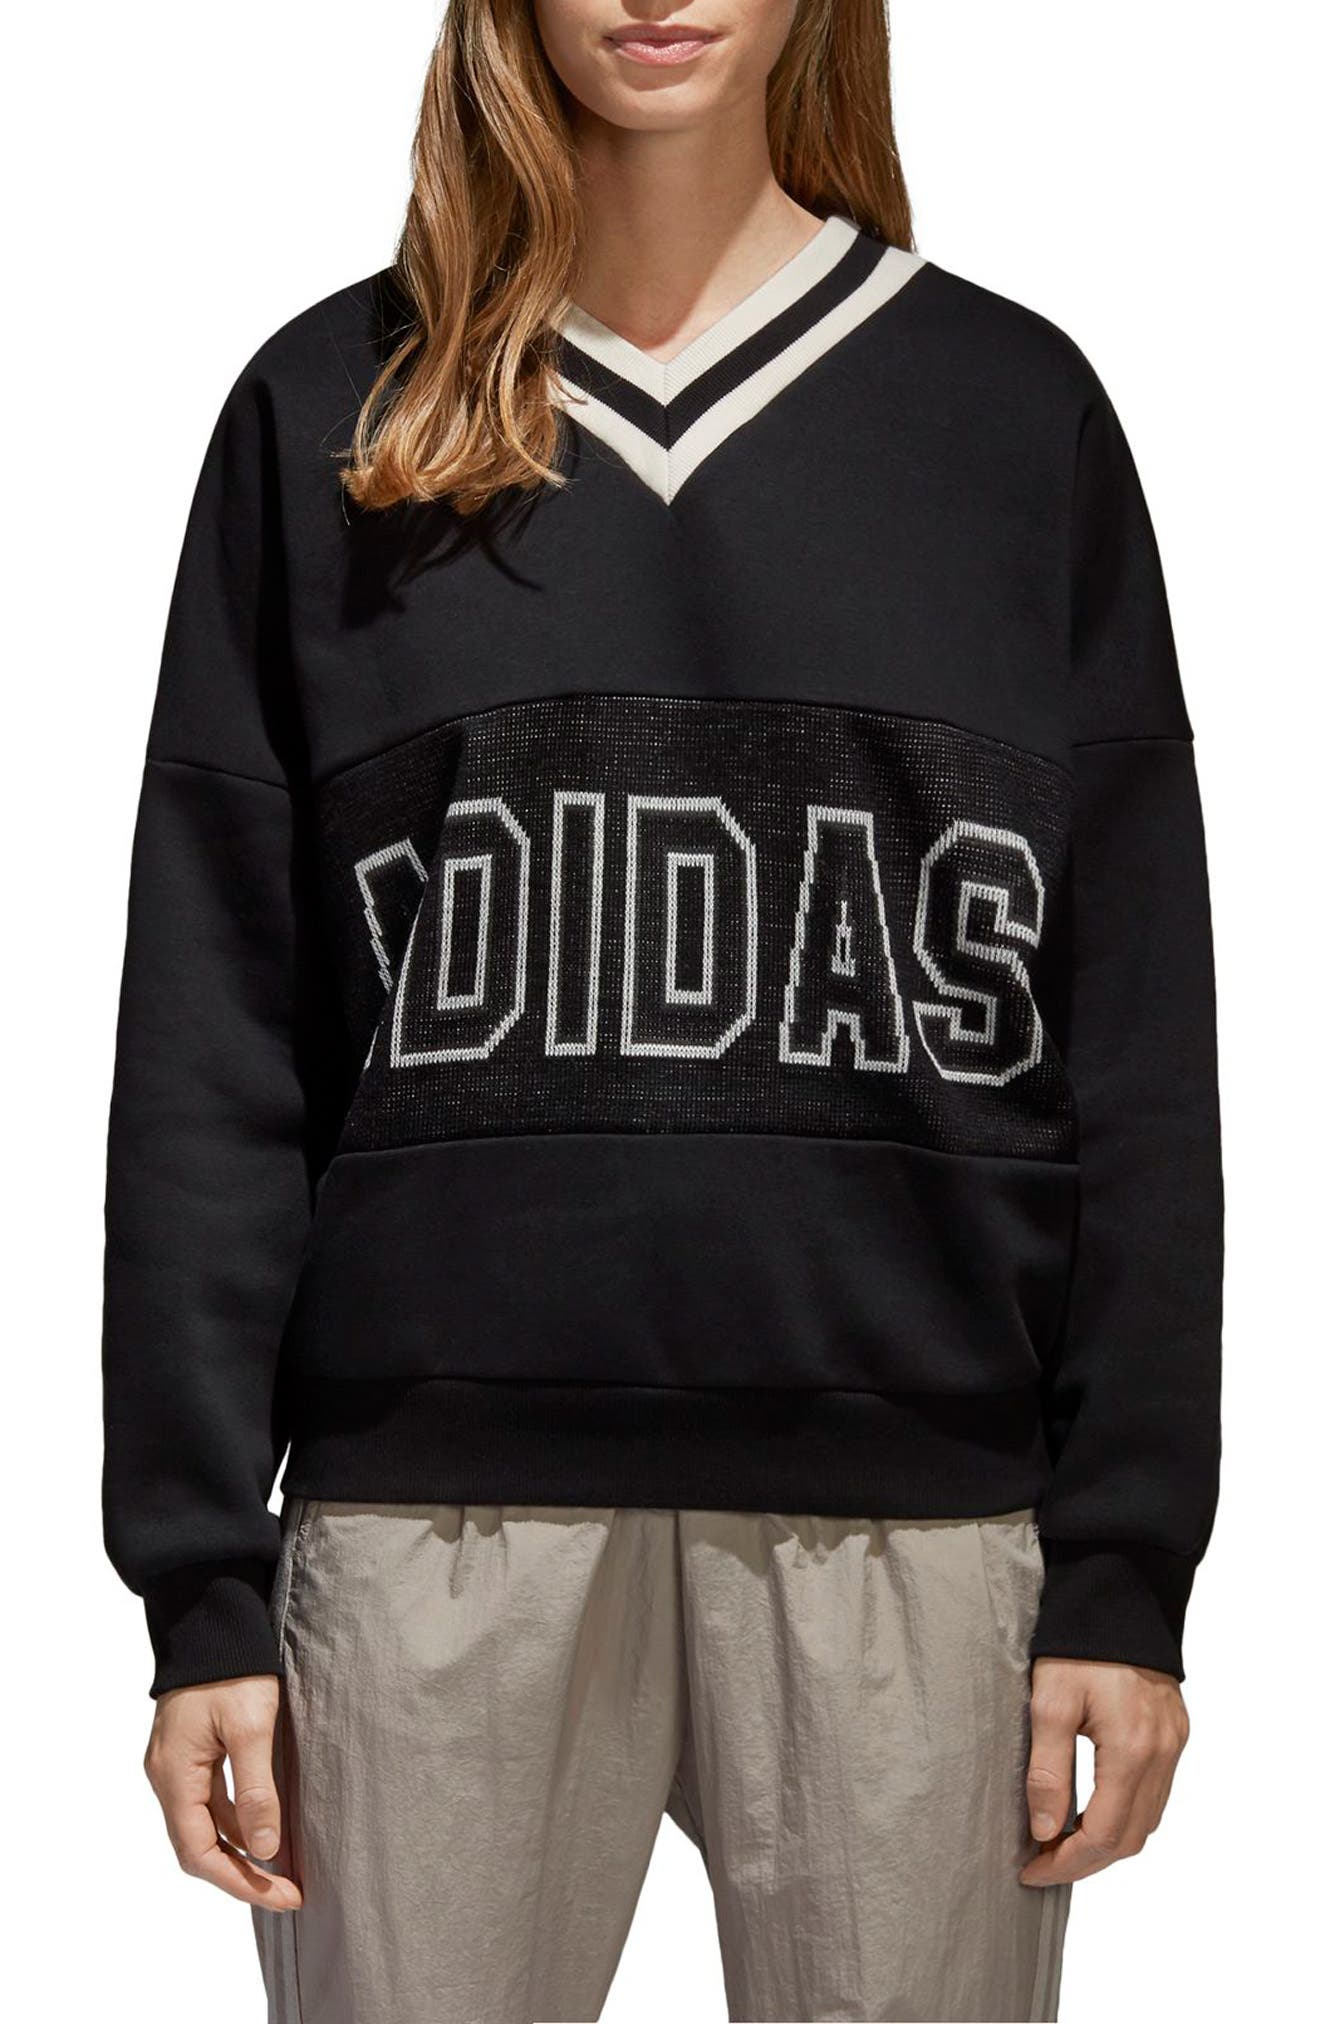 Originals Adibreak Sweatshirt,                         Main,                         color, 001